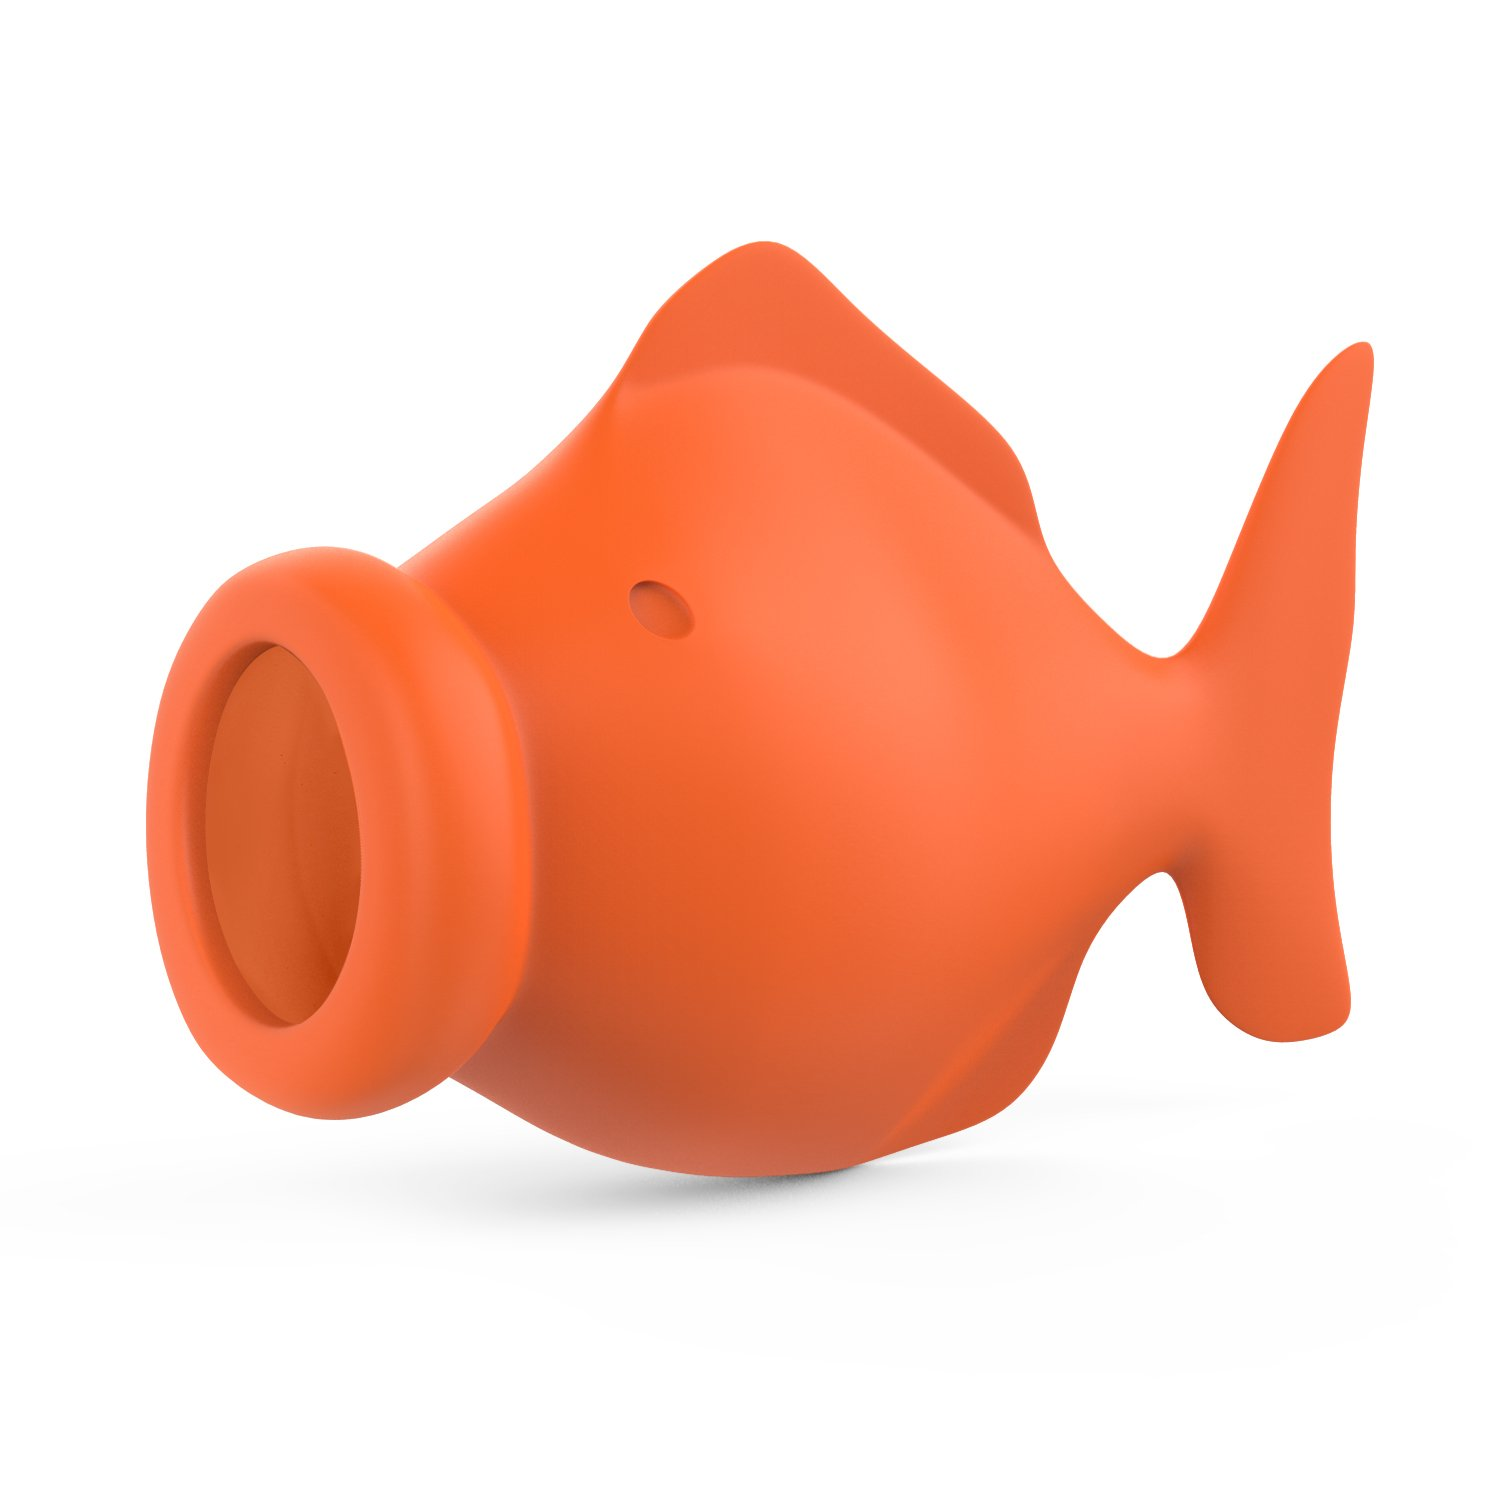 Nuovoware Egg Separator, Cute Silicone Egg Separator Yolk Fish Squeeze Fish Lips Swallow Release York Extractor Divider, Food-Grade Silicone Gel Egg Gadget, Cooking and Baking Tool, Orange P7823-1431